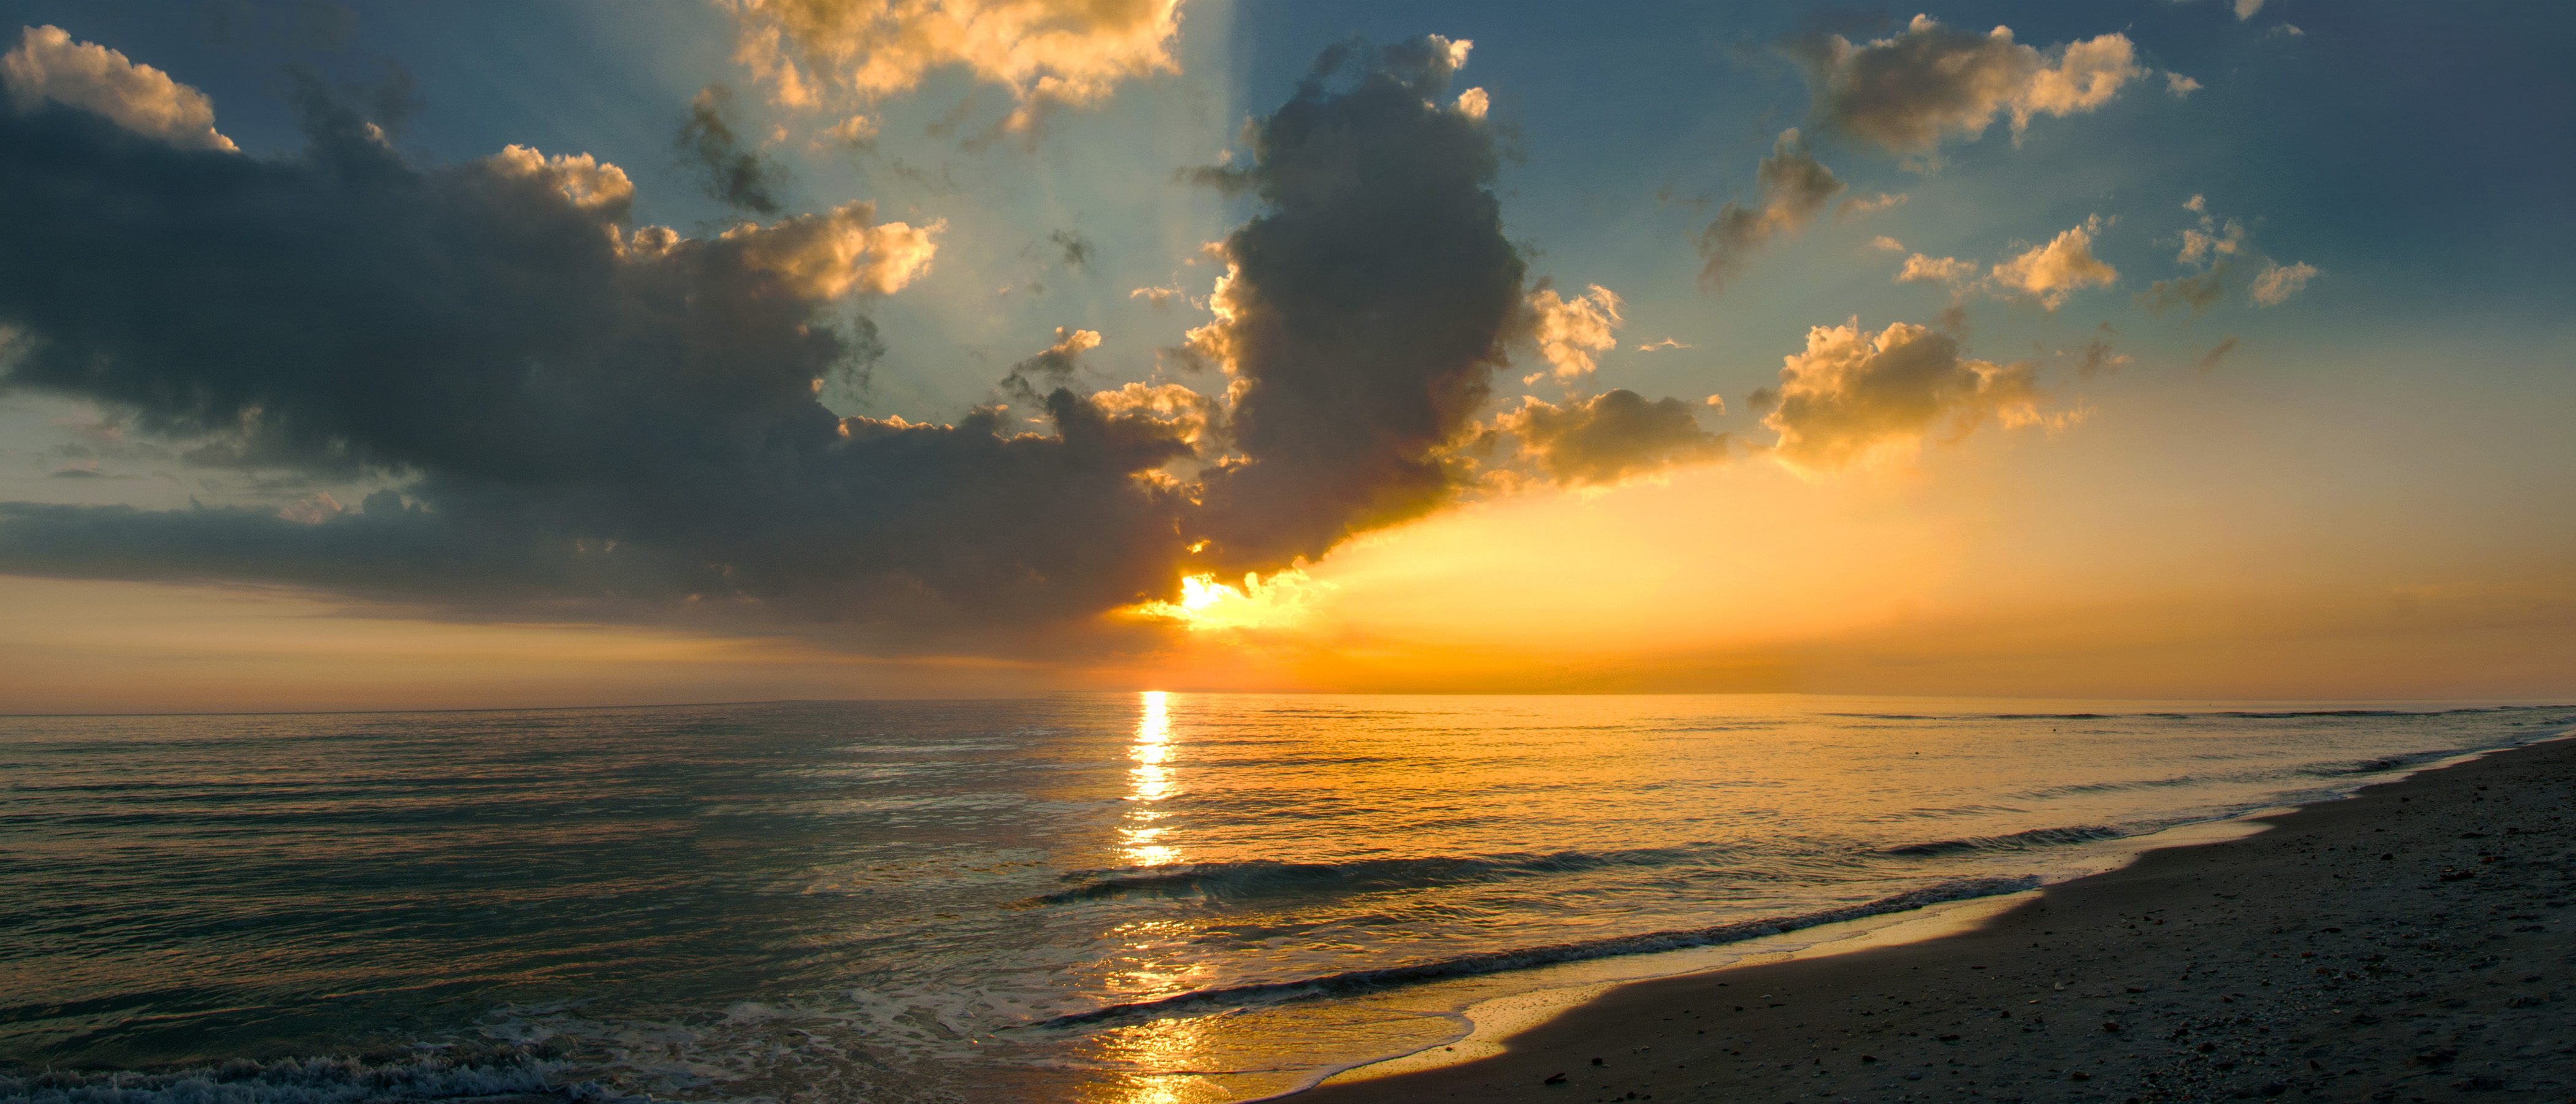 a serene sunset shines an orange and yellow light over the Atlantic Ocean